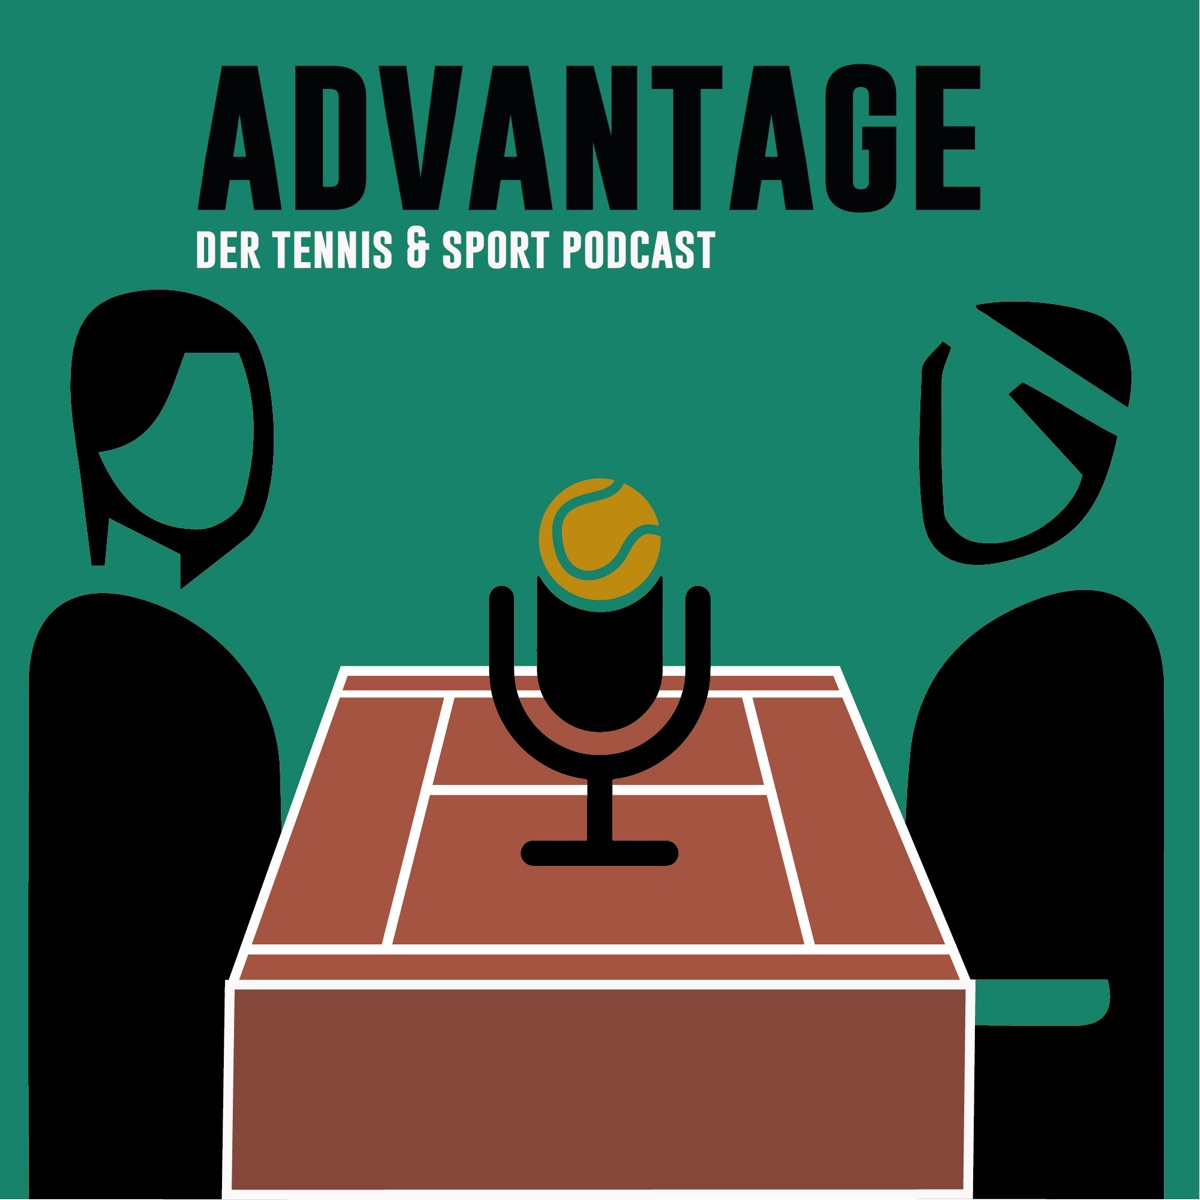 Advantage- der Tennis & Sportpodcast